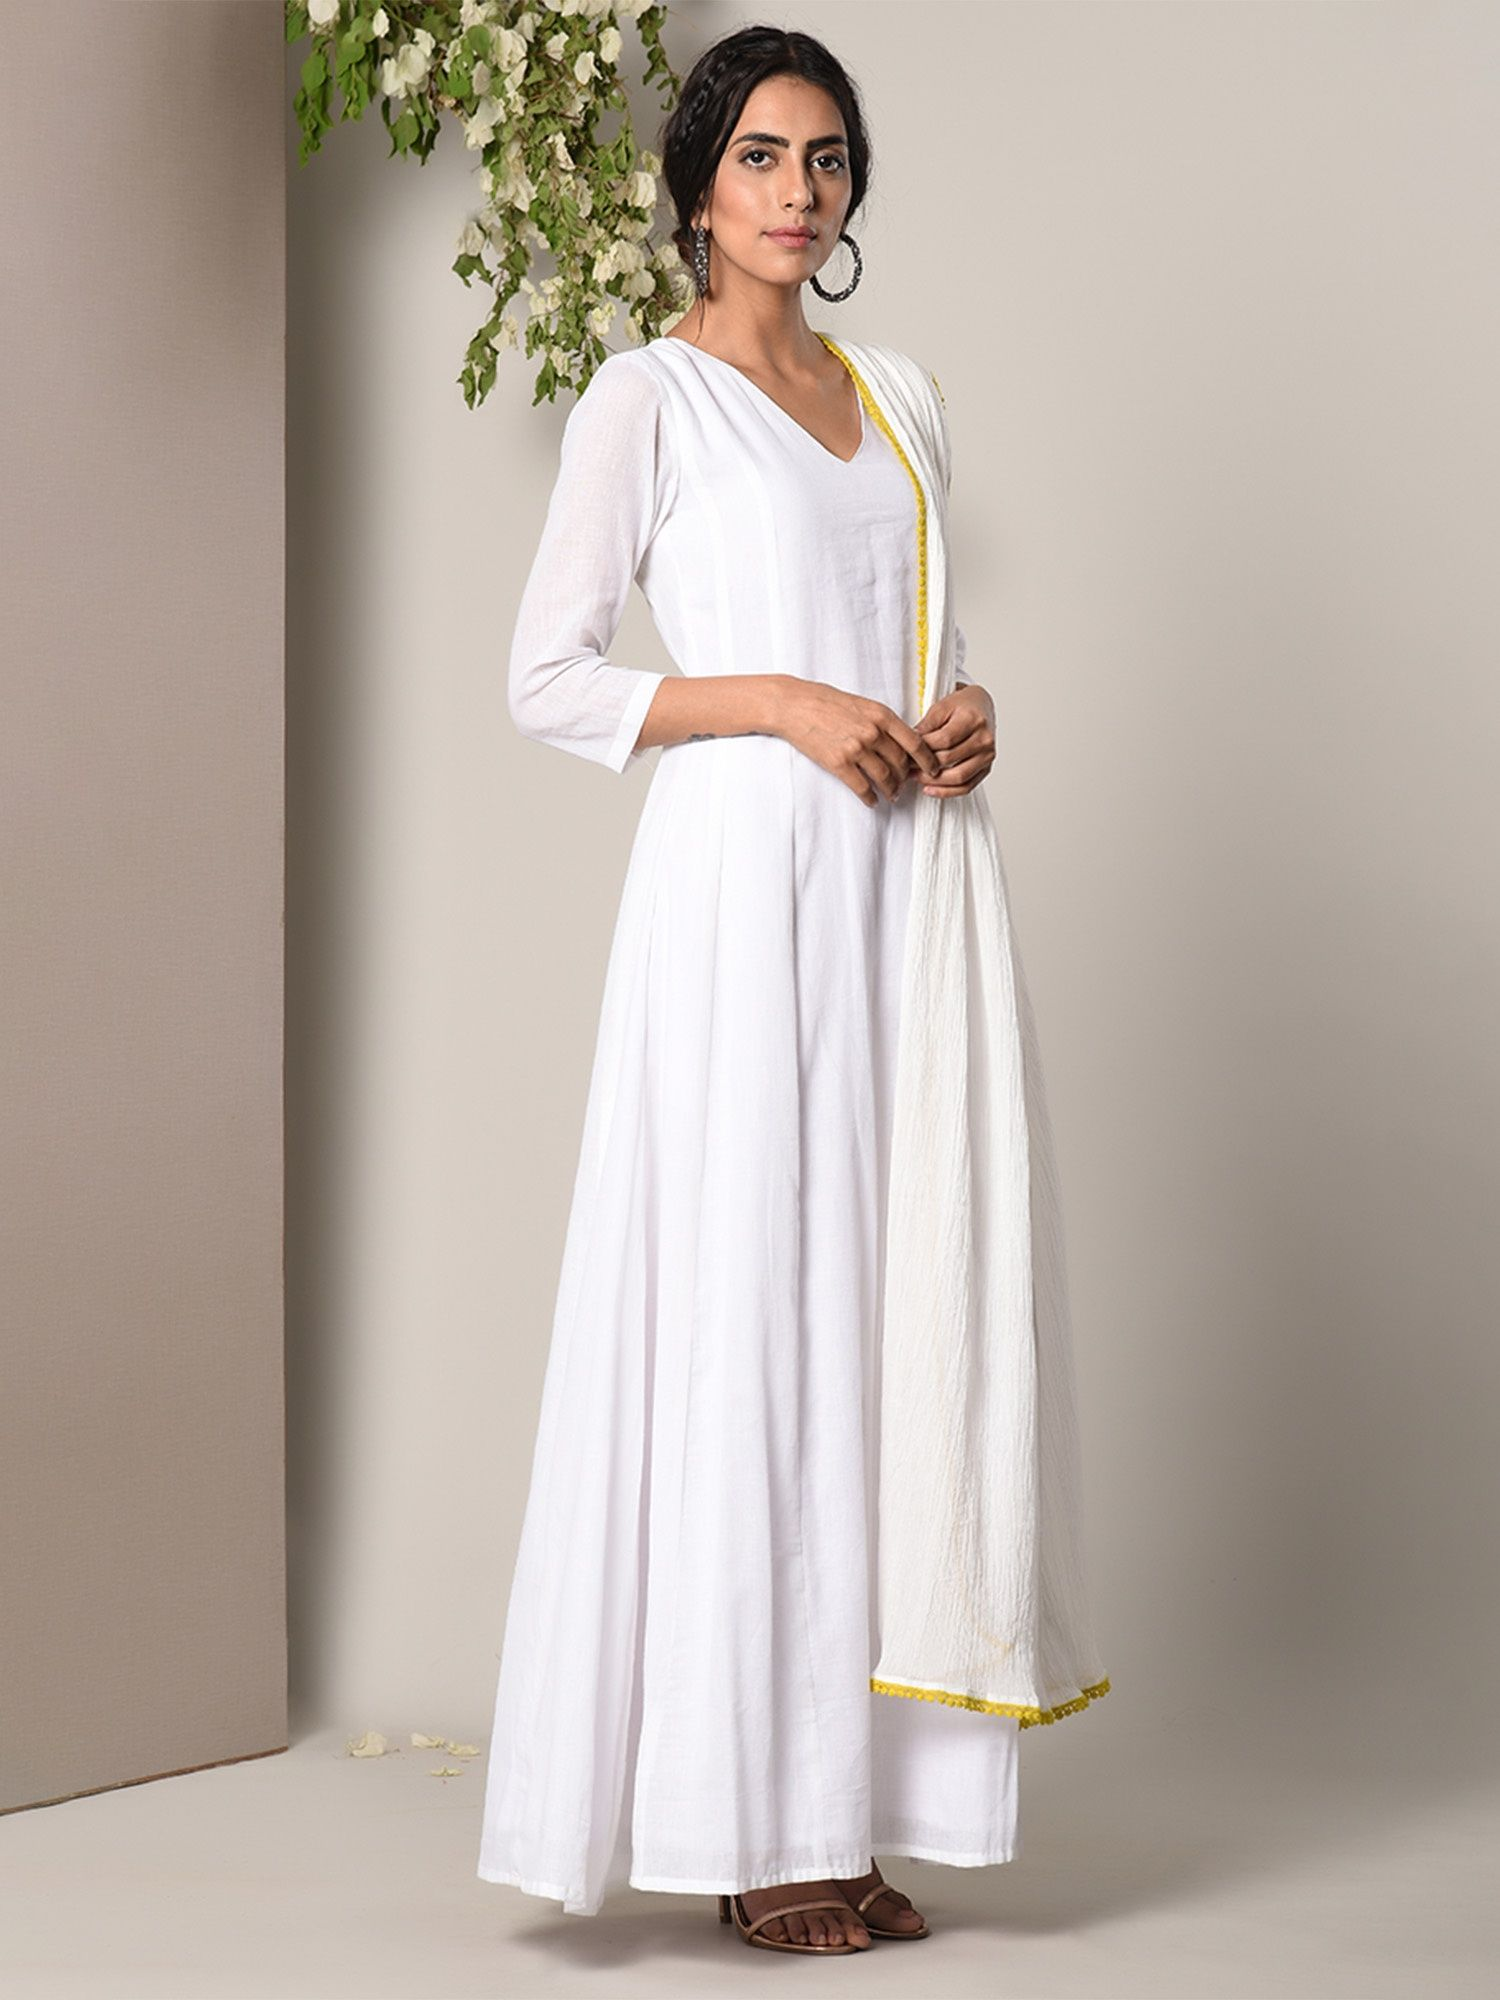 bf541b902a7a trueBrowns Salwar Suits and Sets : Buy trueBrowns White Dress ...